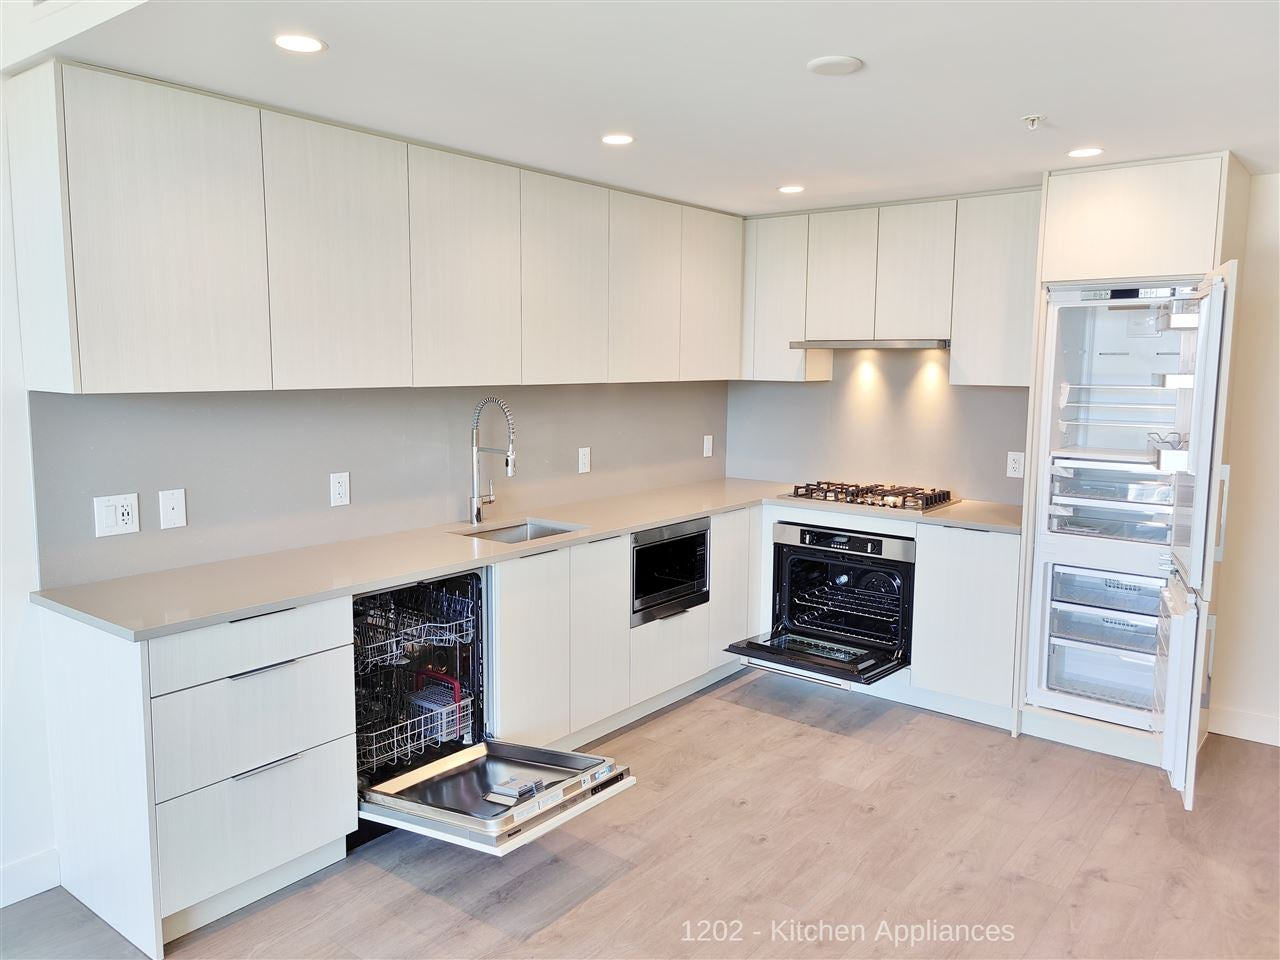 1202 4465 JUNEAU STREET - Brentwood Park Apartment/Condo for sale, 1 Bedroom (R2470011) - #11